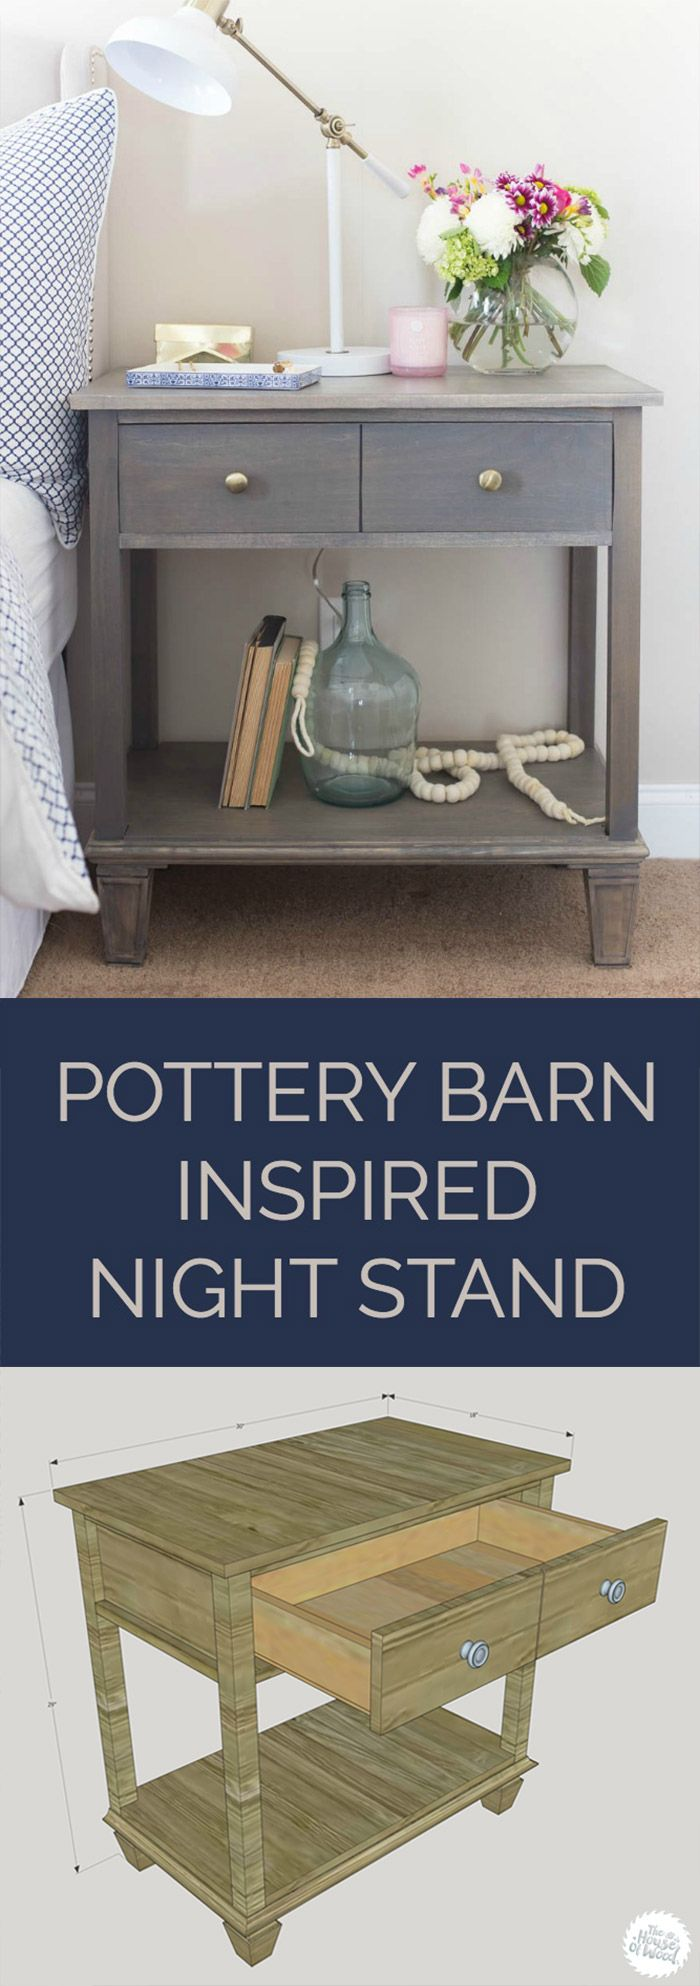 pb the tables into two transformed bedside inspired barn for garage diy furniture trunk knockoff themed night in img are barns girl table pottery makeover stands nightstands